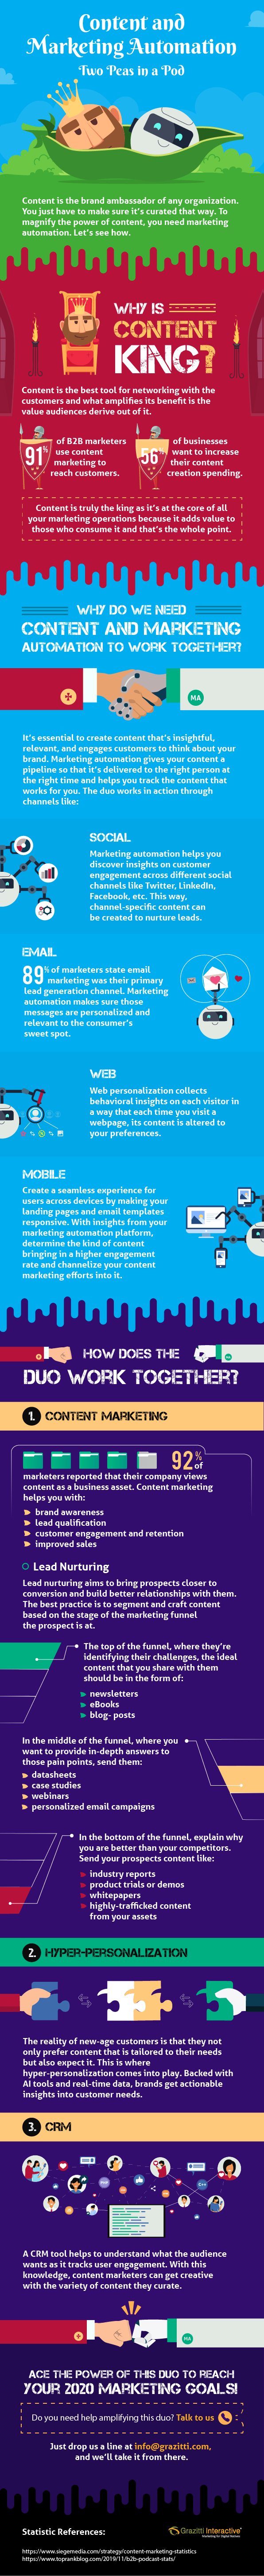 Content and Marketing Automation – Two Peas in a Pod #infographic